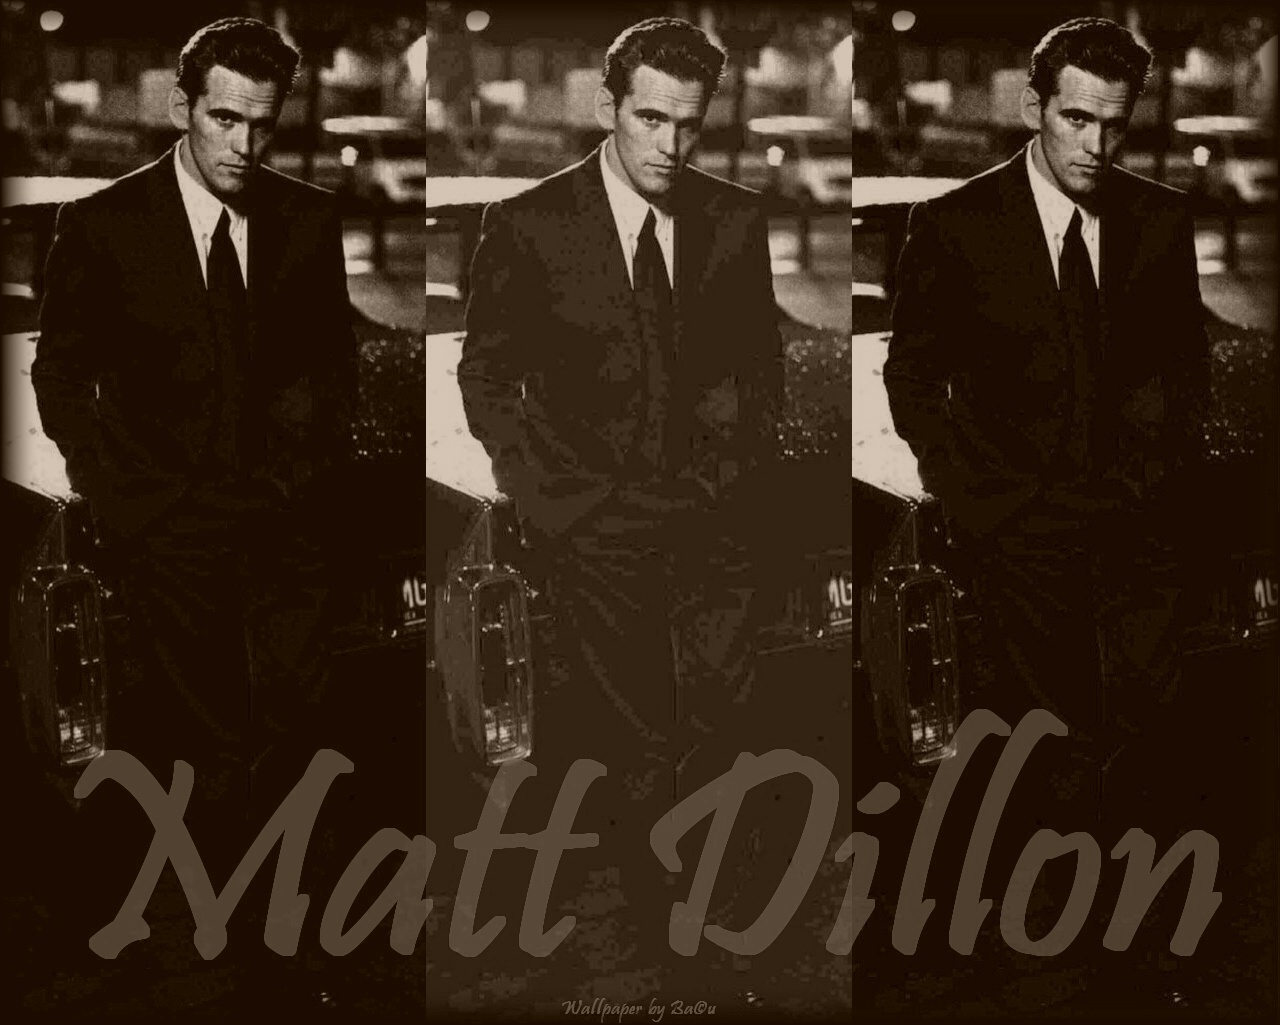 did miss kitty marry matt dillon